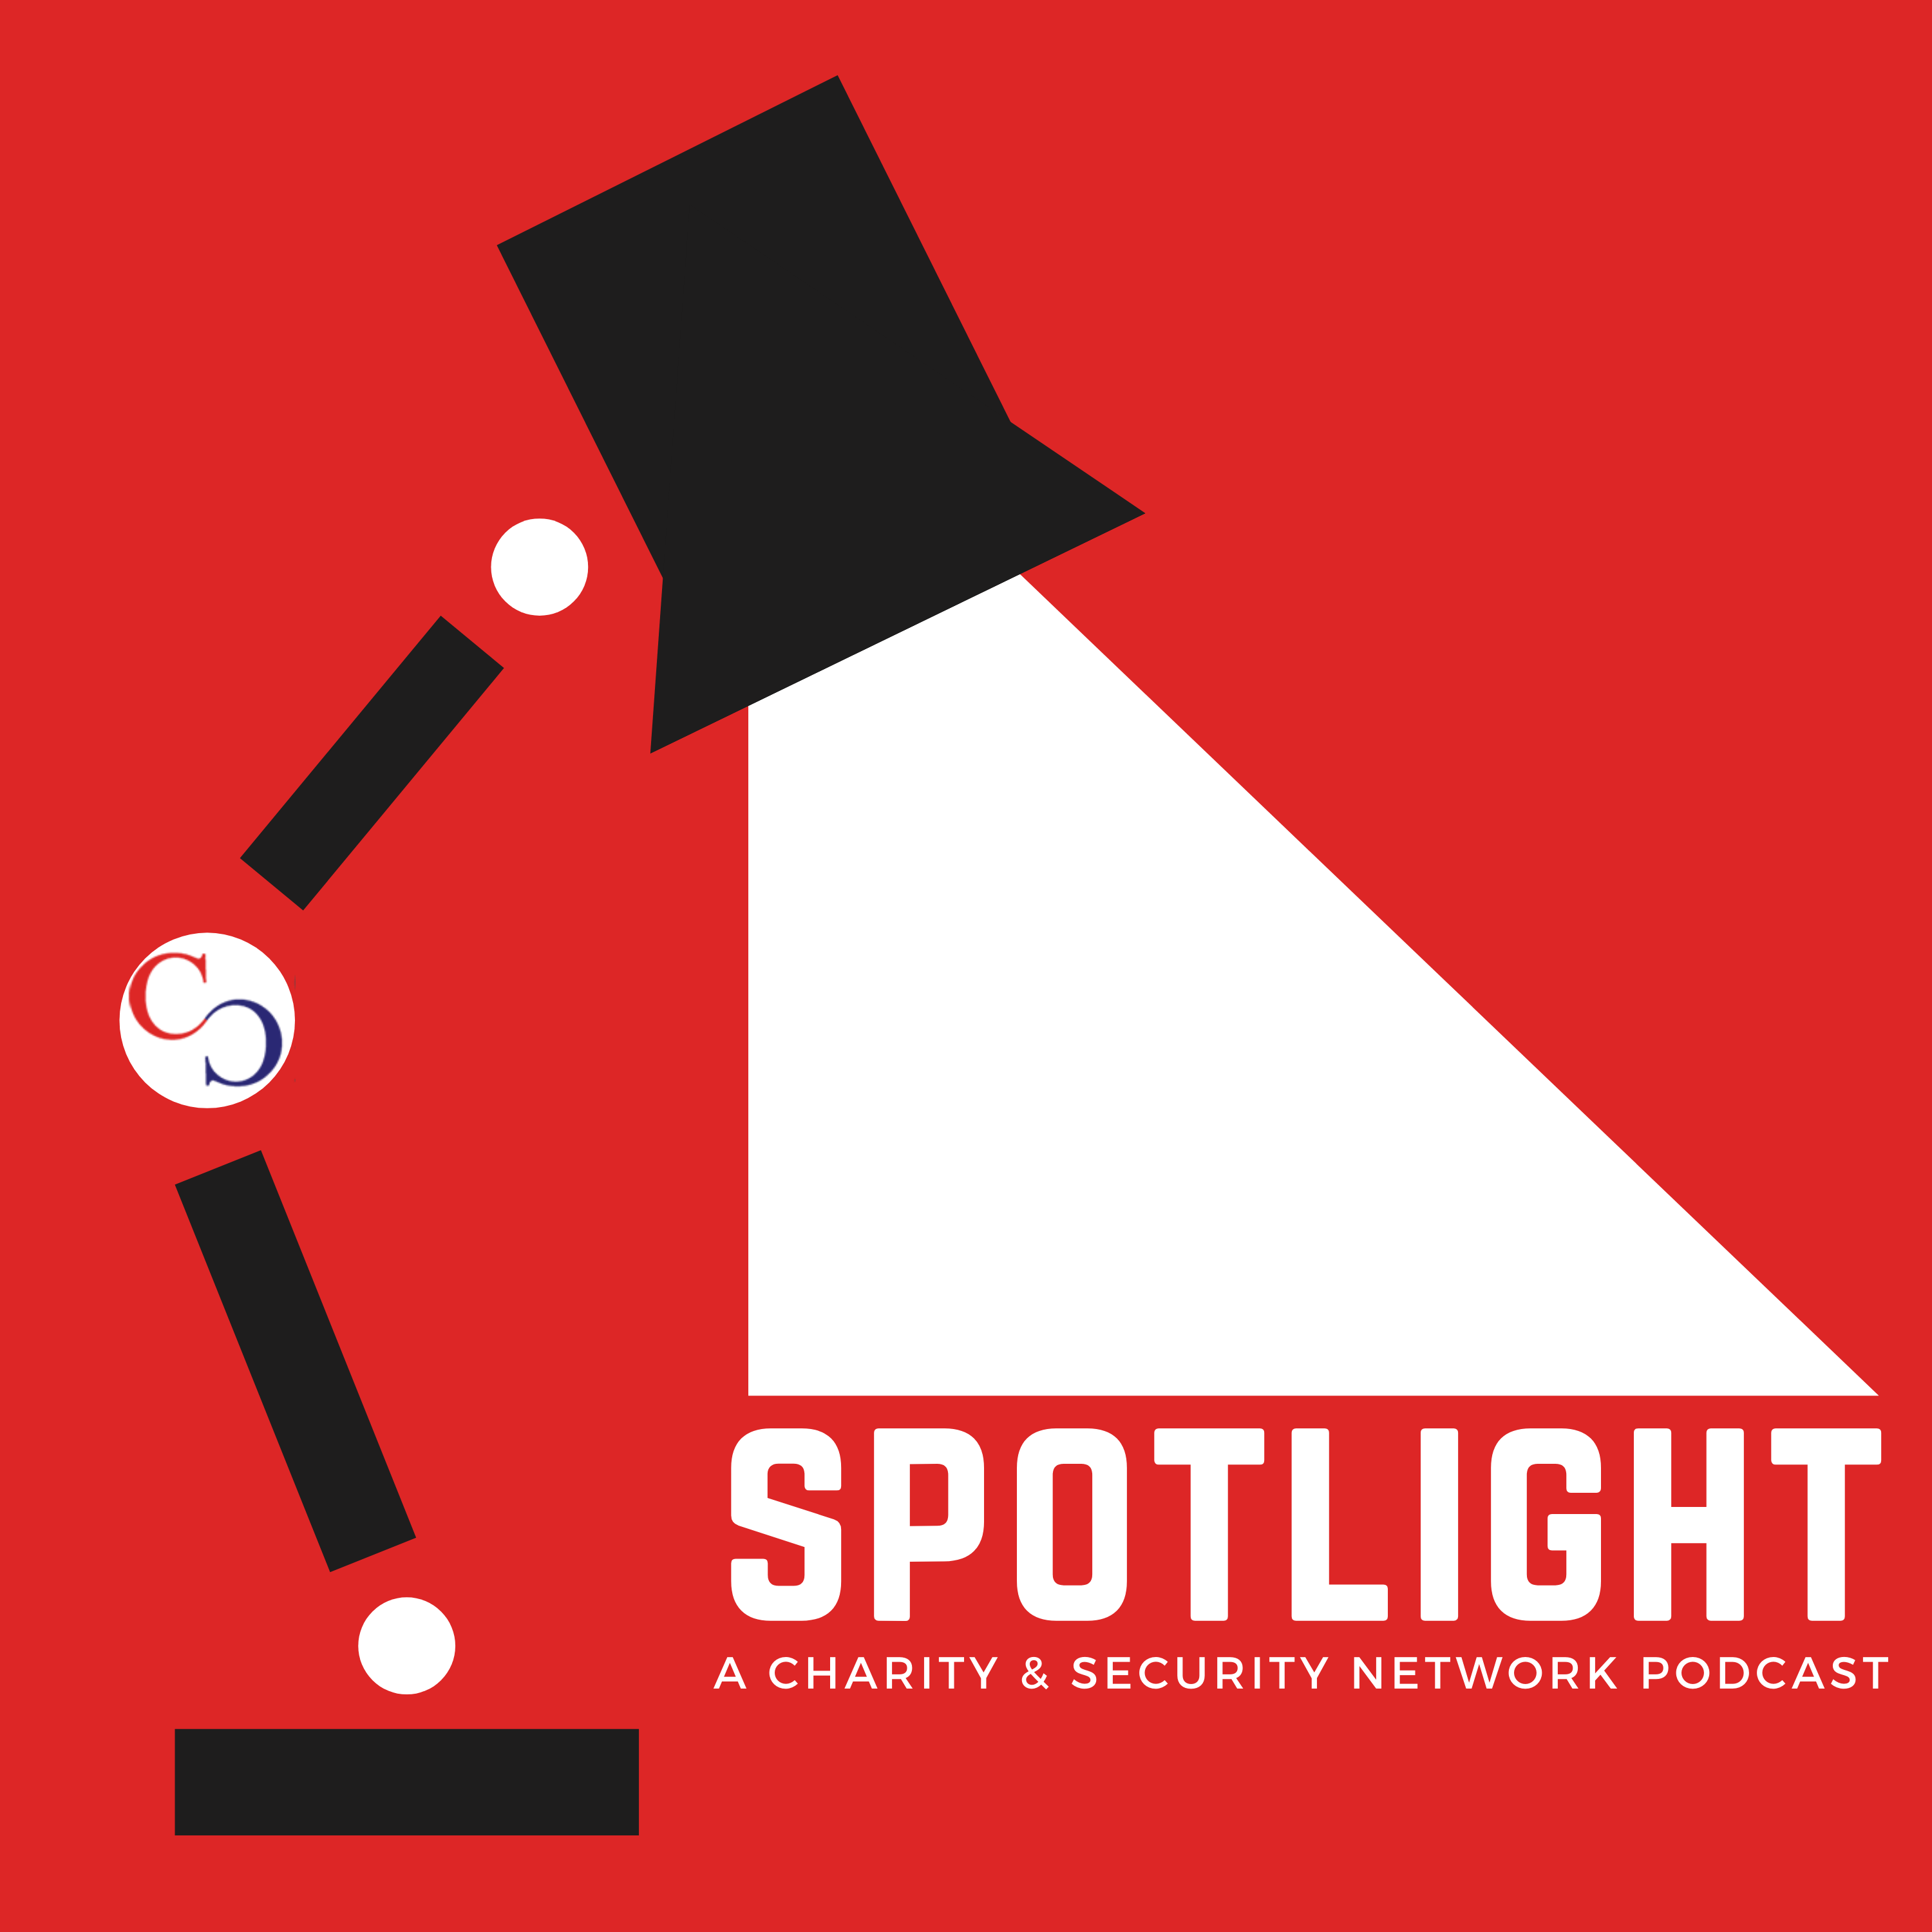 Spotlight: A Charity & Security Network Podcast